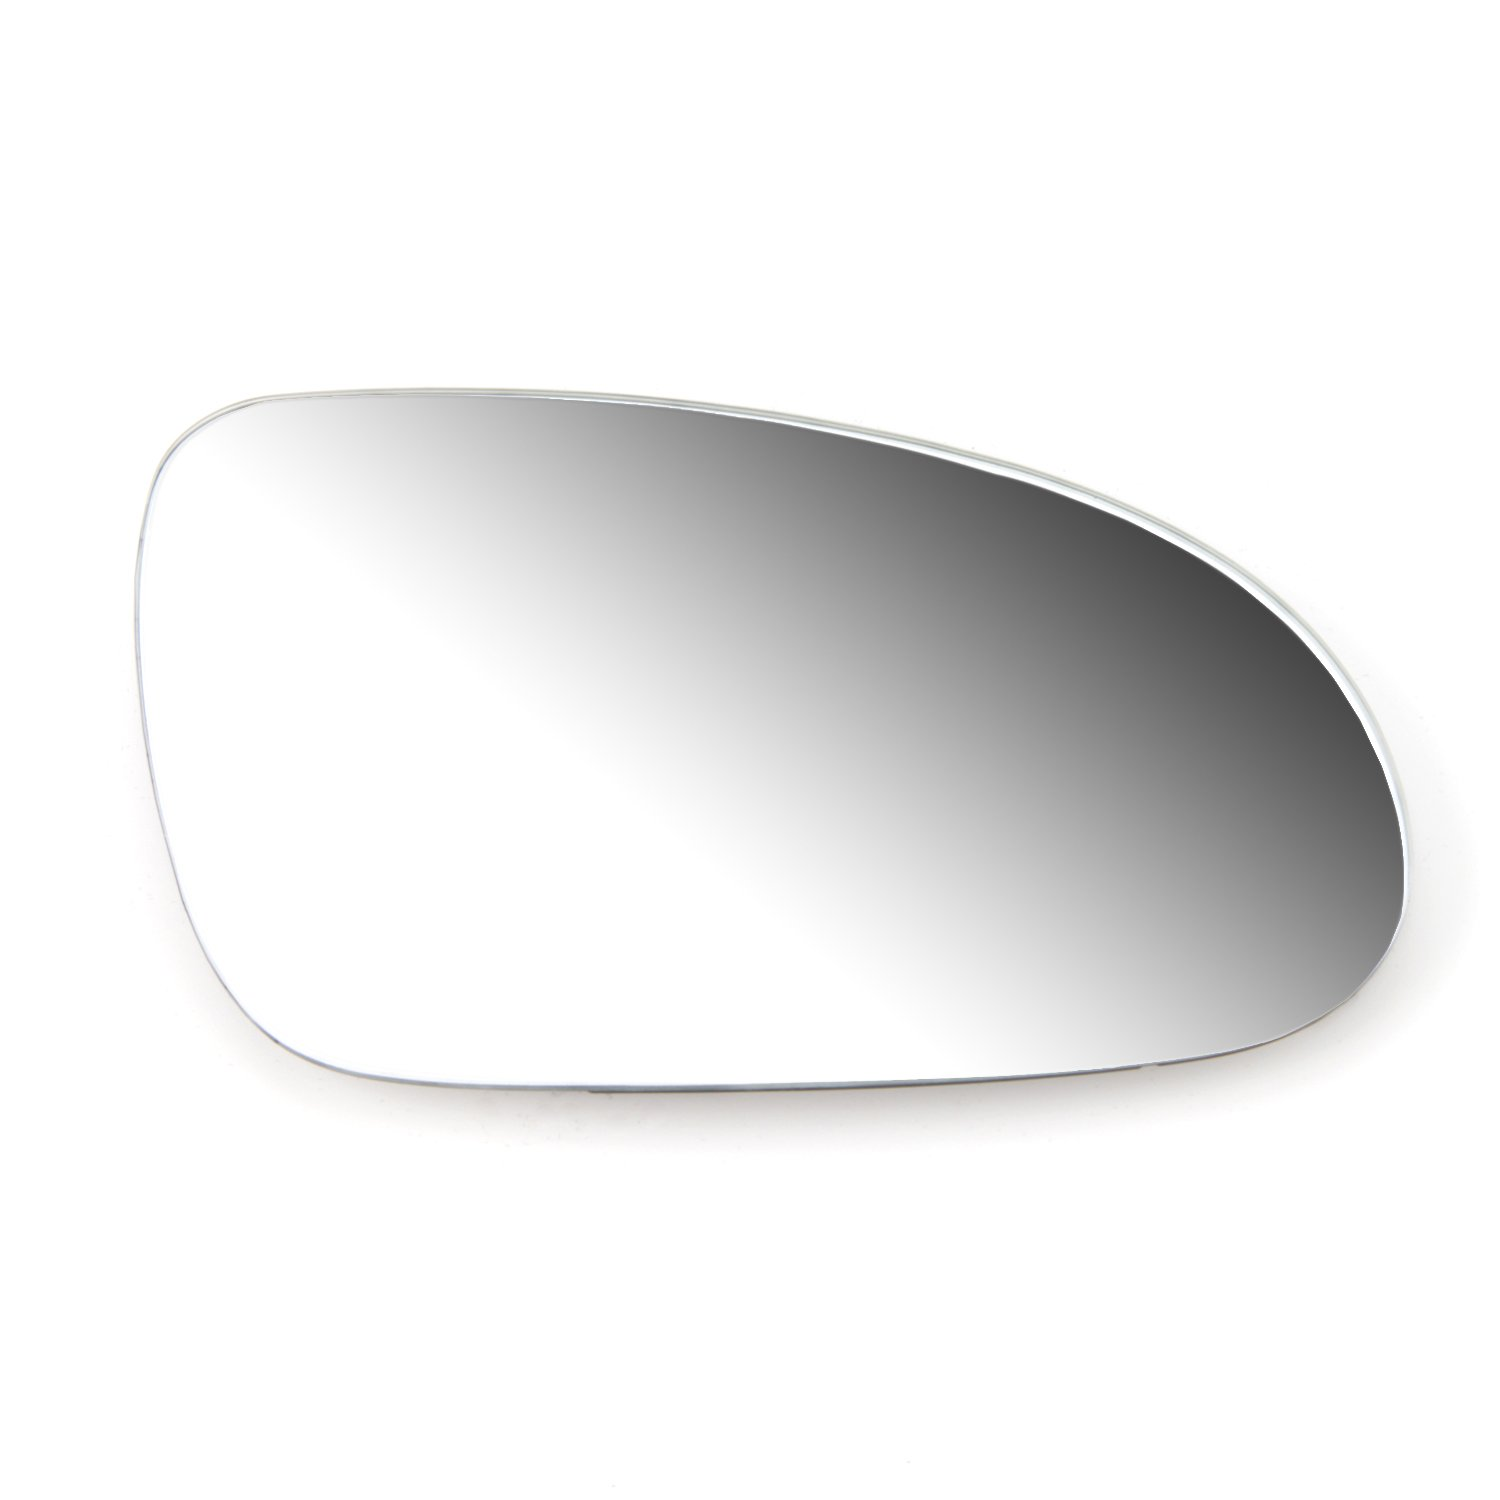 TAKPART Left Passenger Side Heated Electric Wing Mirror Glass